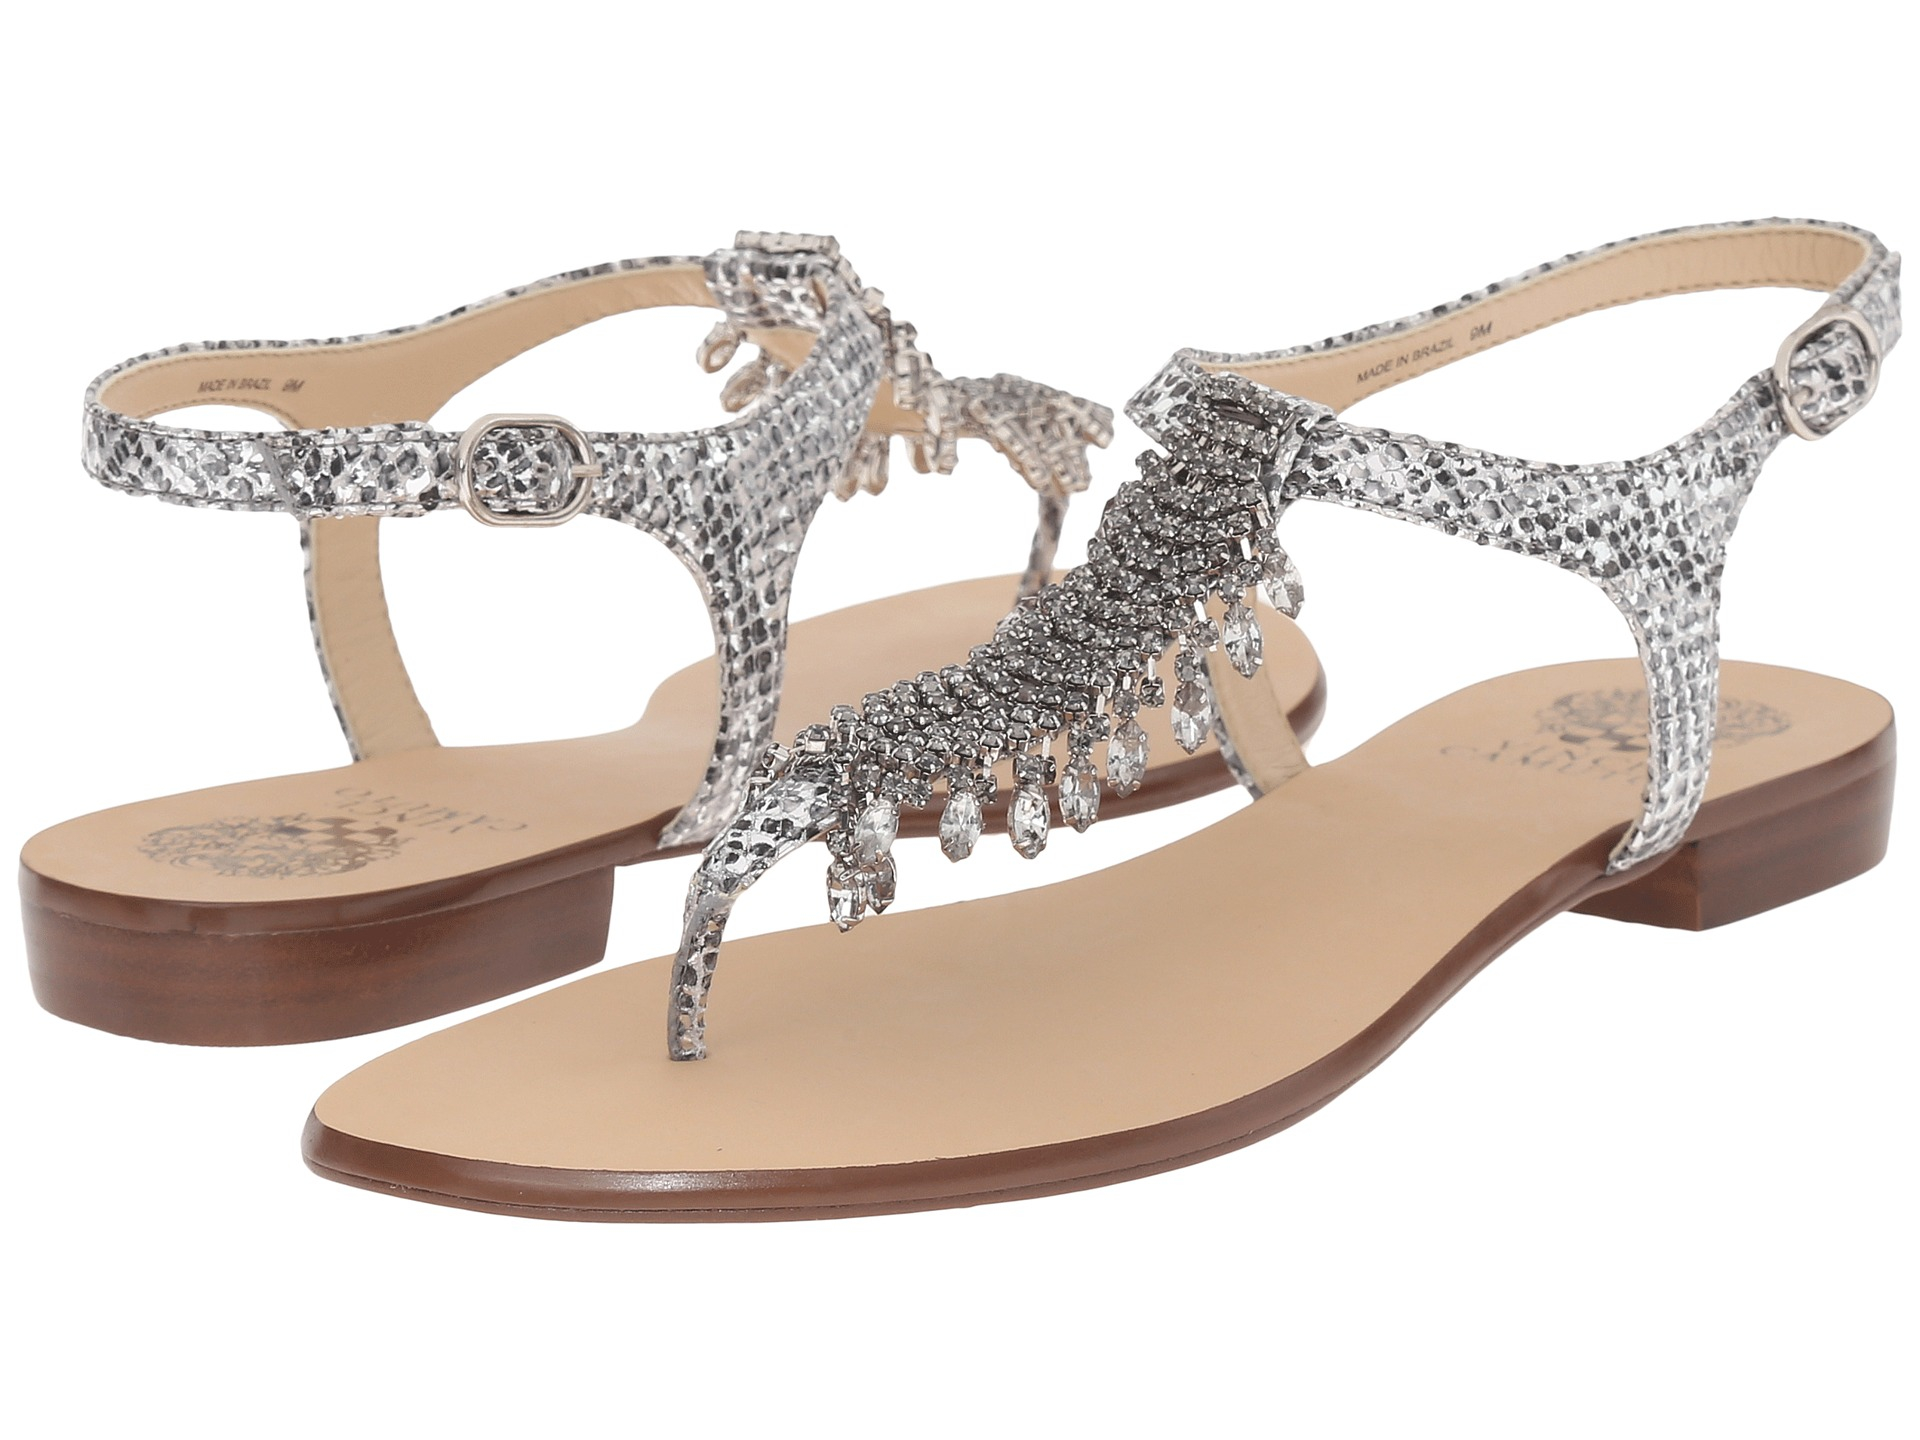 Lyst Vince Camuto Jachai Jeweled T Strap Sandals In Metallic